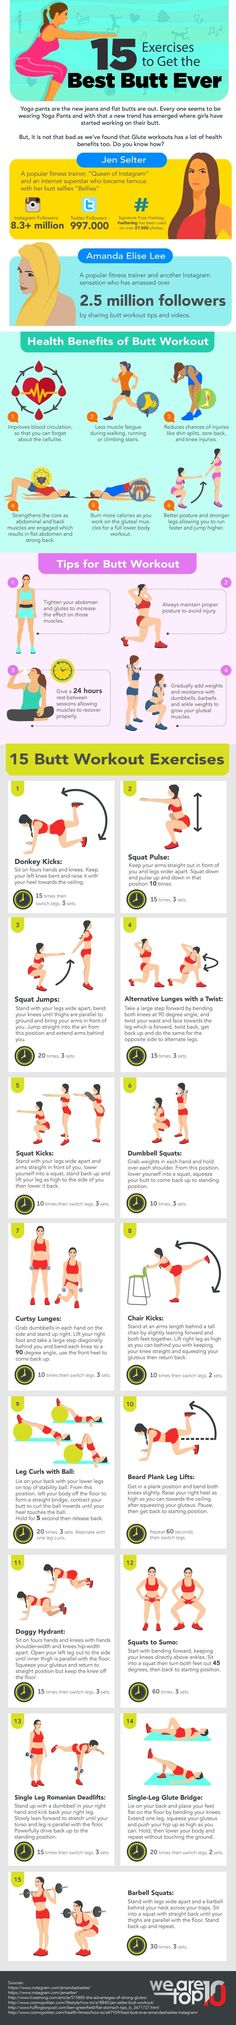 5 Best Butt Exercise